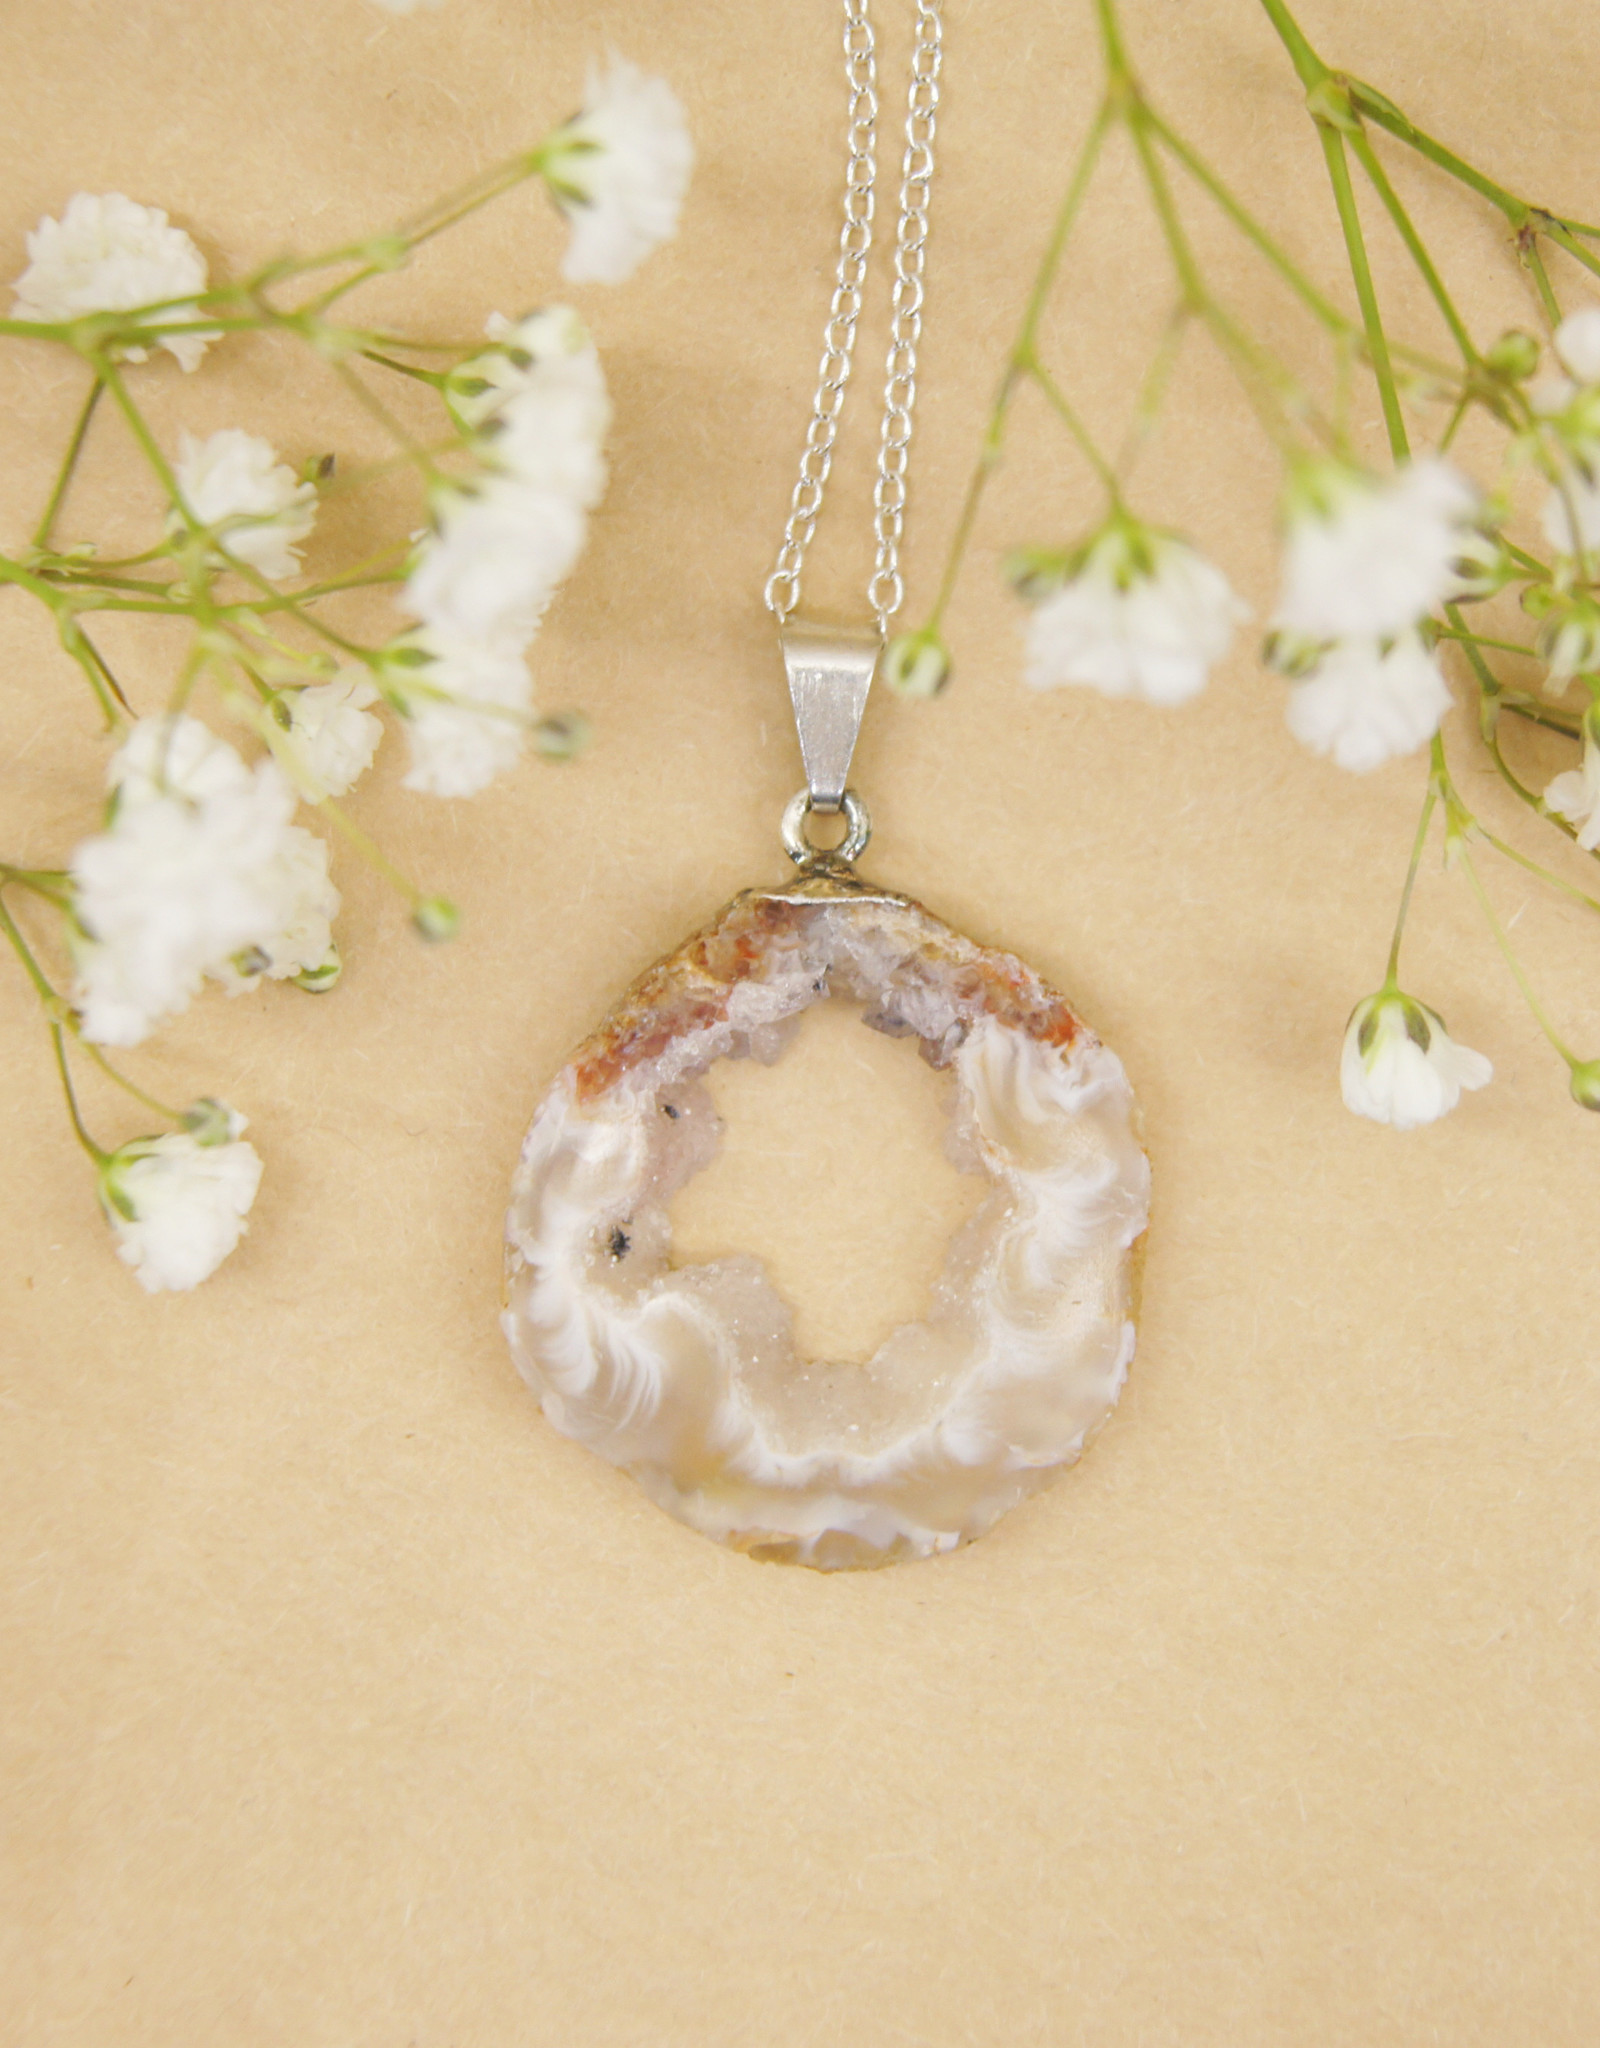 Nomad Crystals Sliced Geode Necklaces